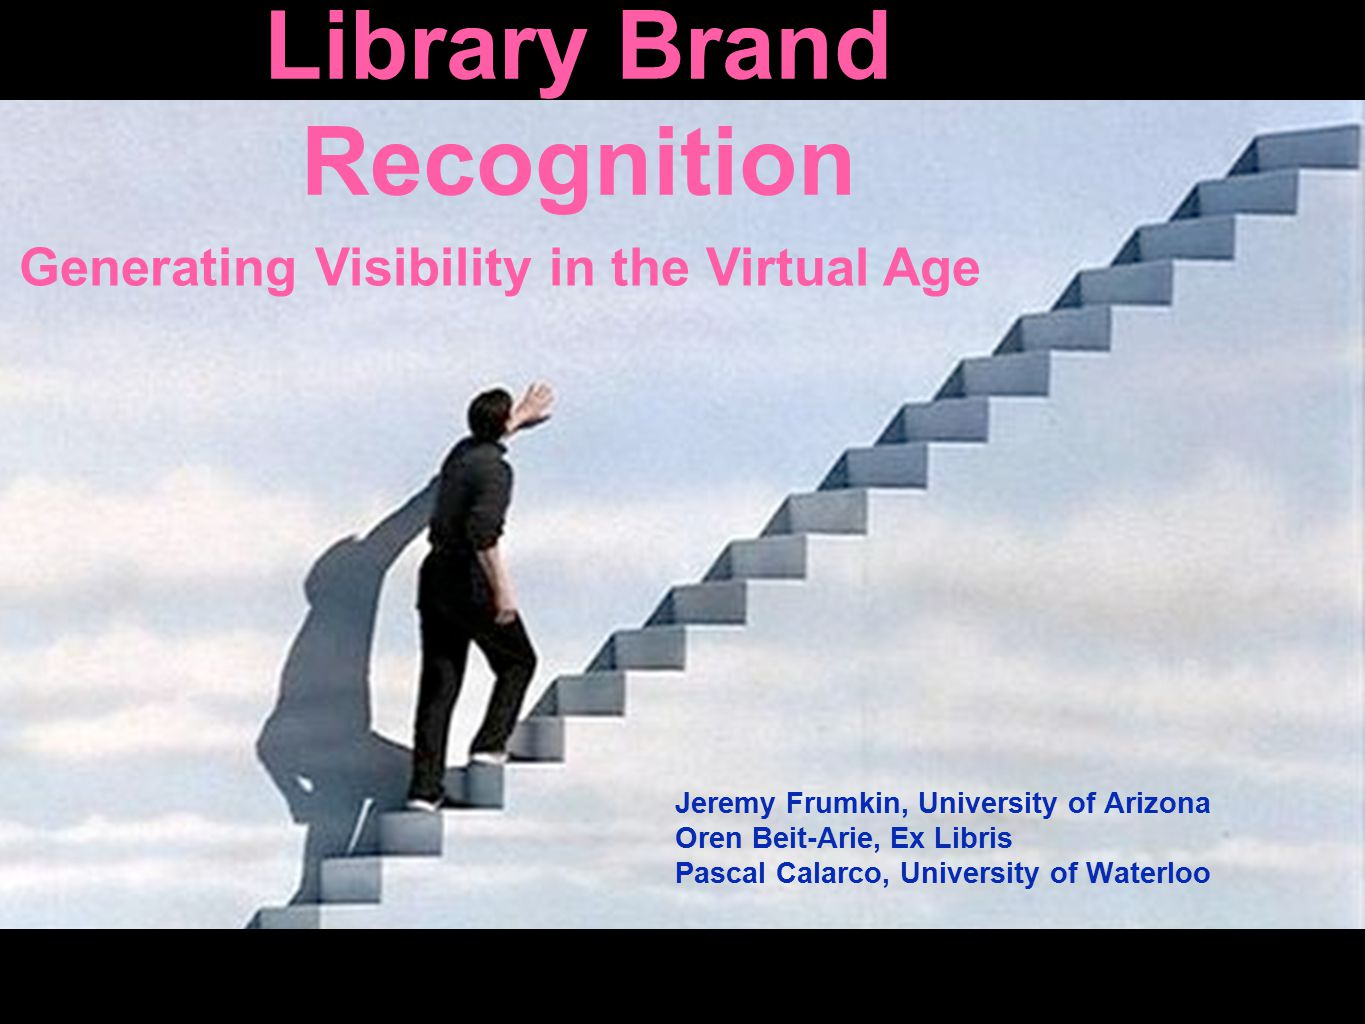 Library Brand Recognition Jeremy Frumkin, University of Arizona Oren Beit-Arie, Ex Libris Pascal Calarco, University of Waterloo Generating Visibility in the Virtual Age